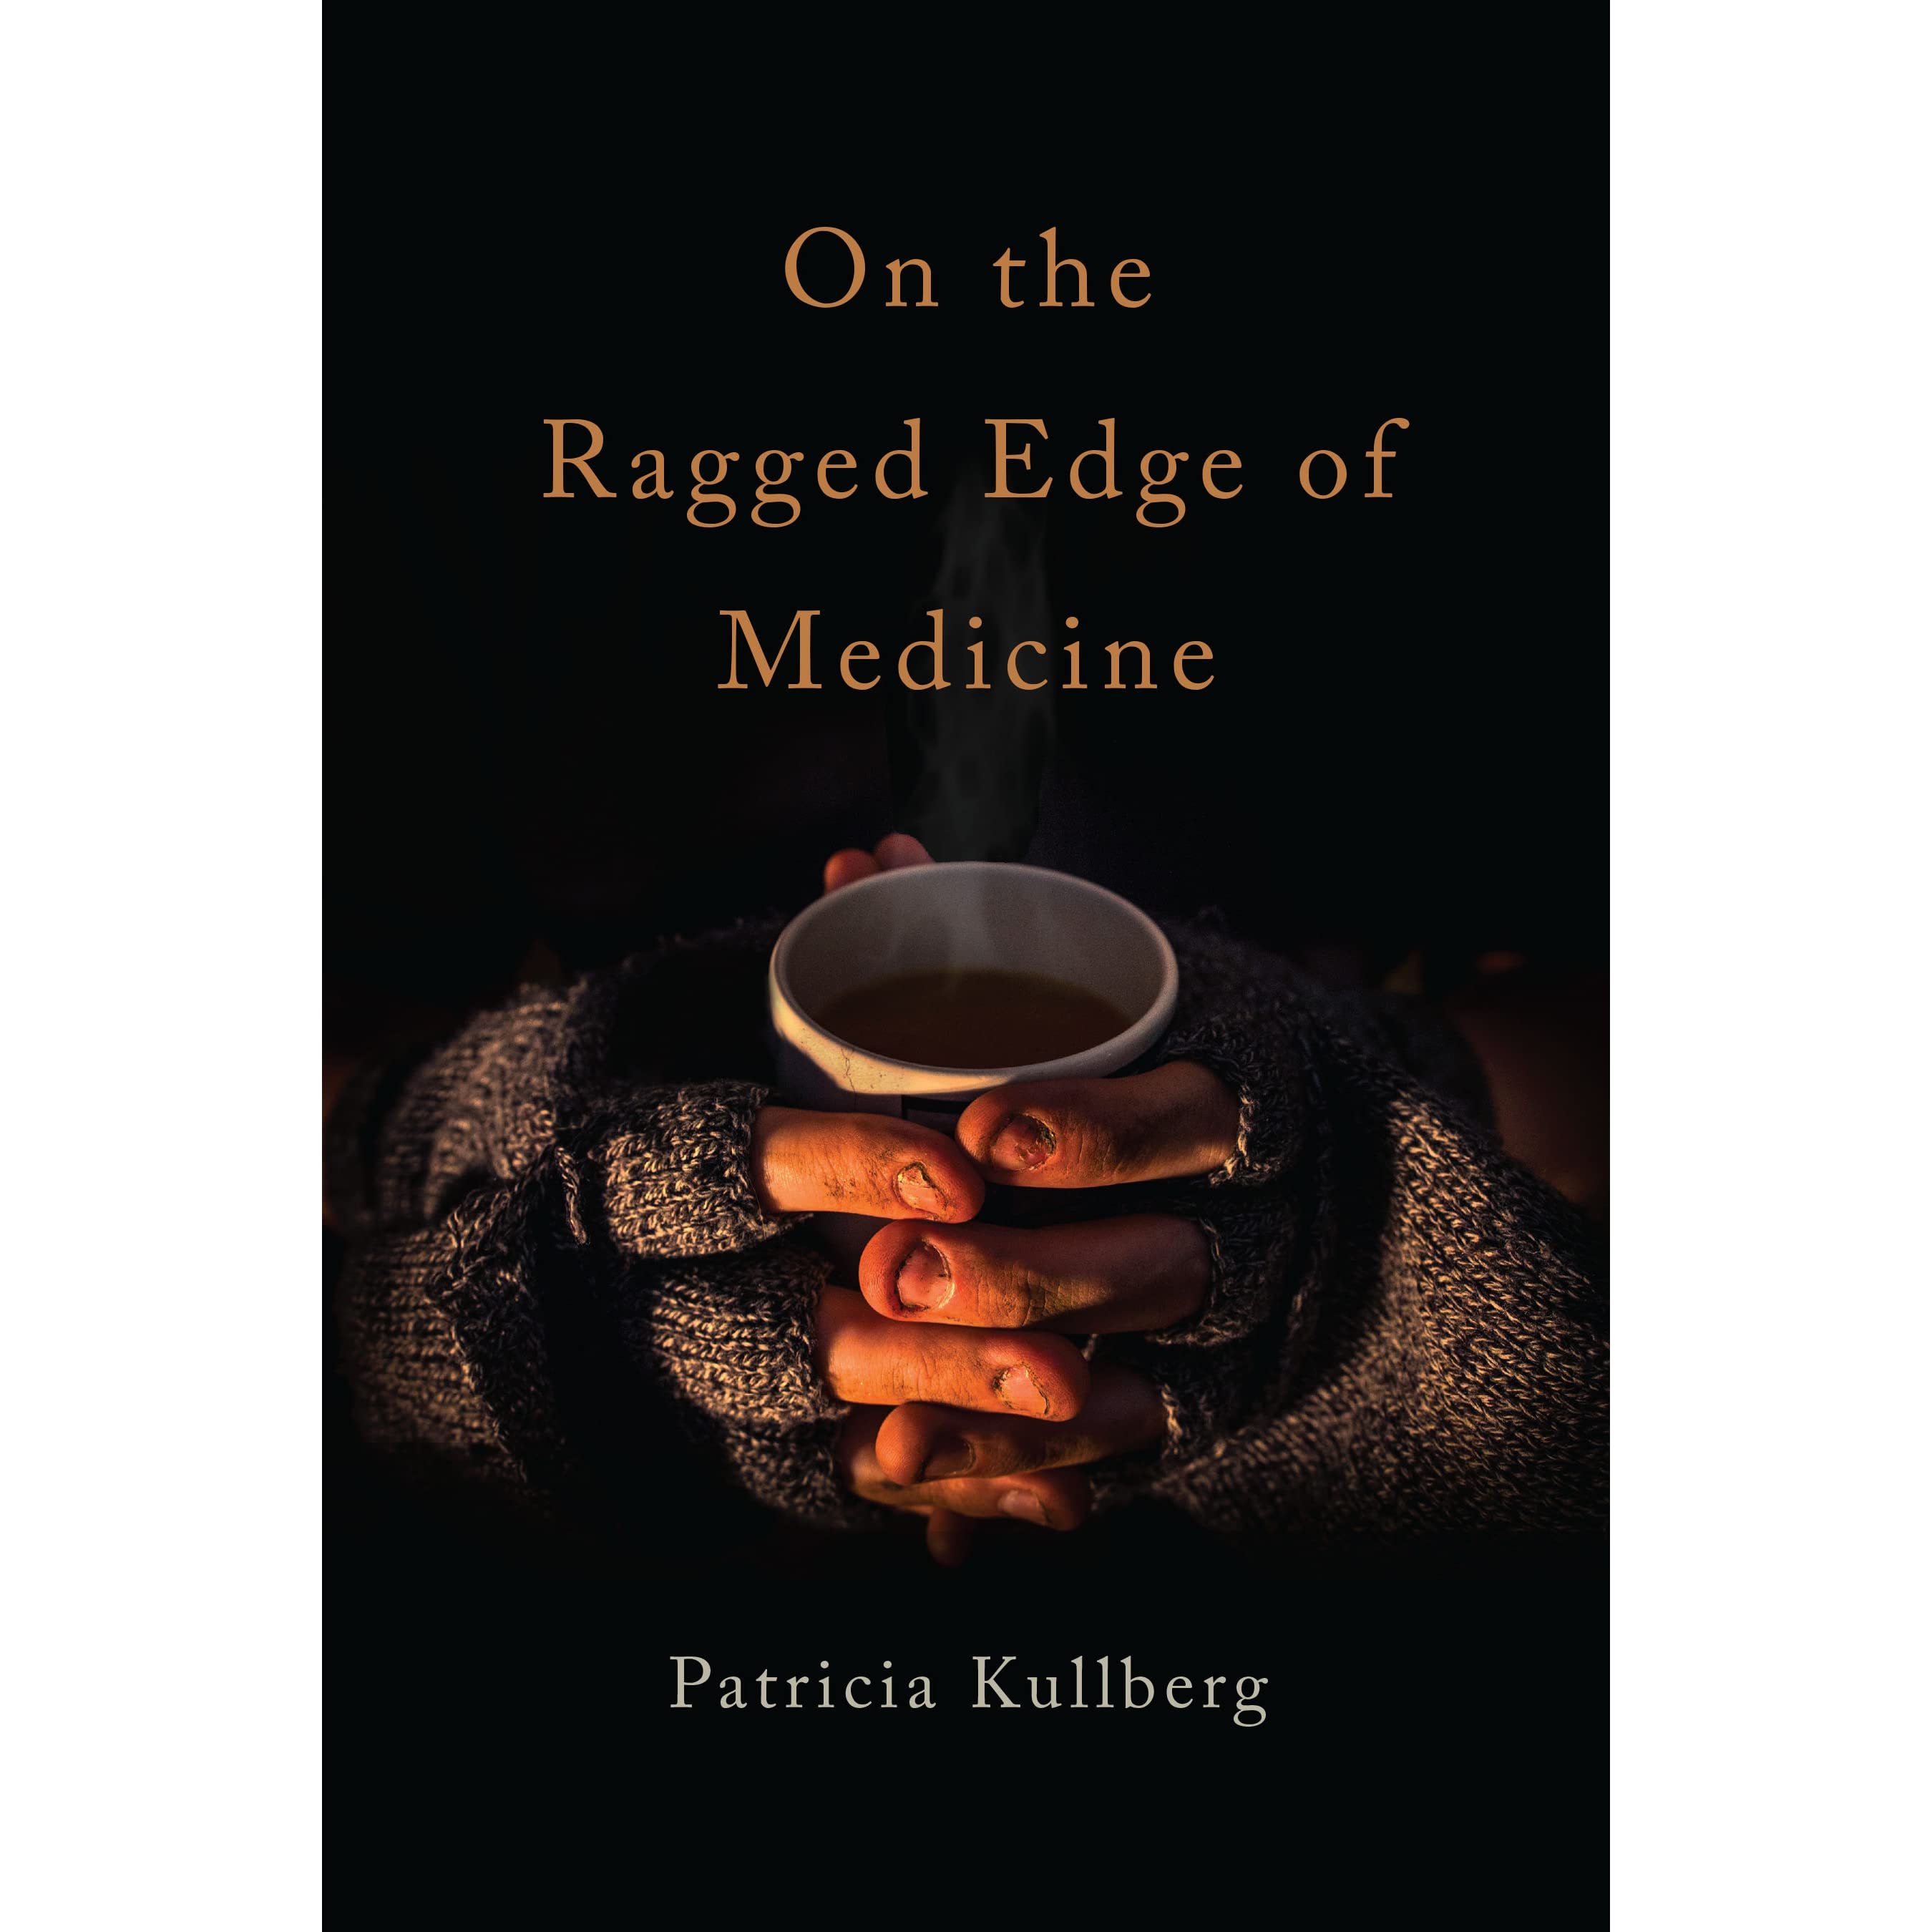 Living on the ragged edge of reason with chronic pain